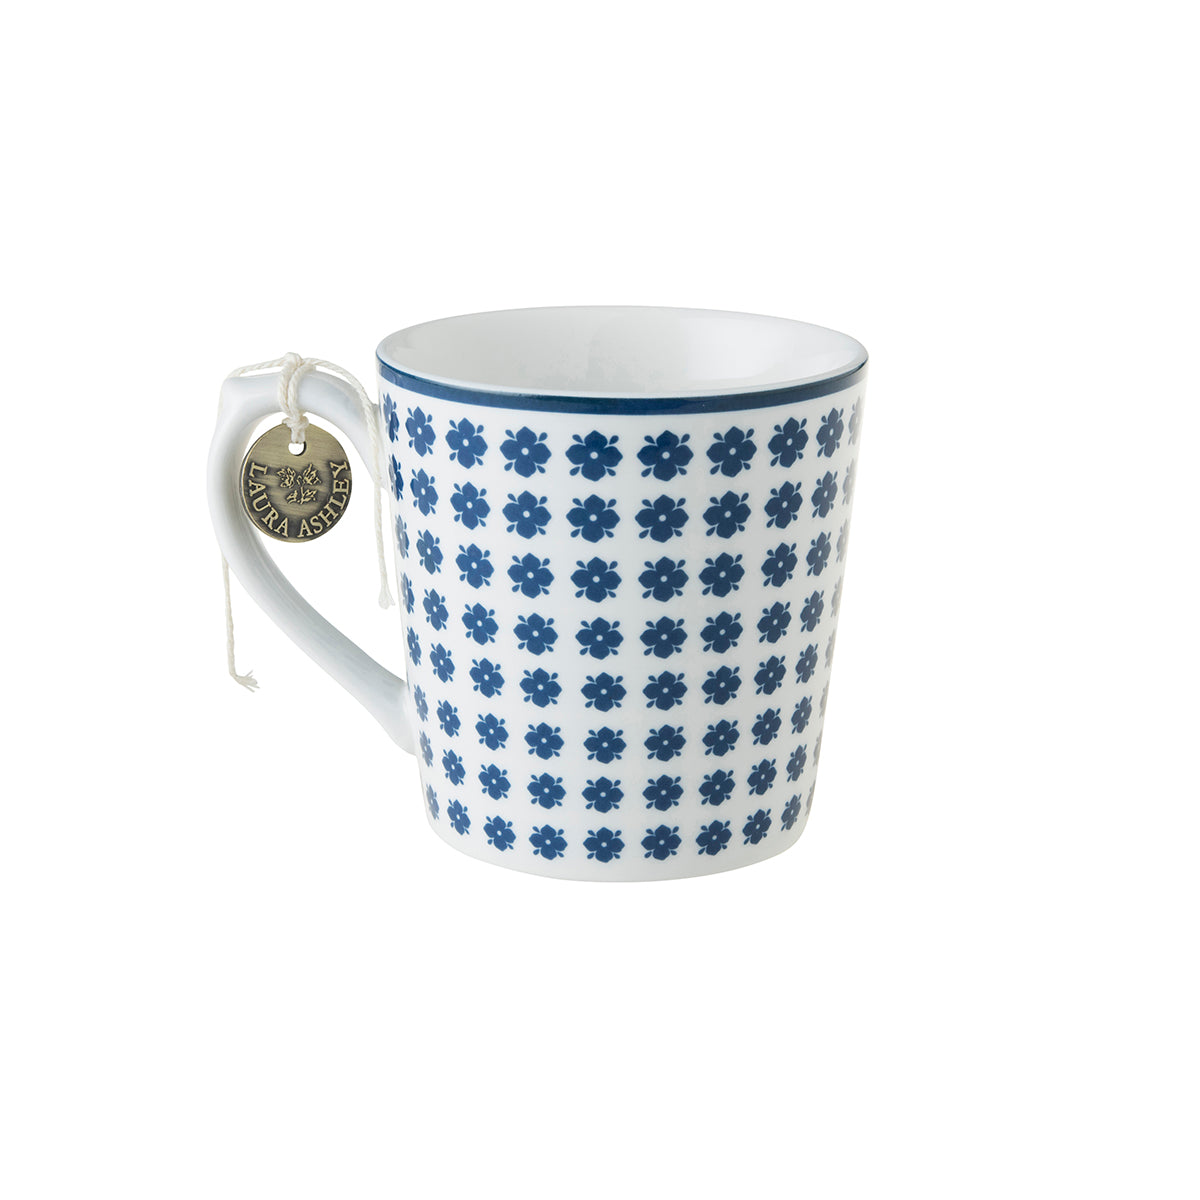 Laura Ashley Blueprint - Humble Daisy Mug - The Chef Pad Shop